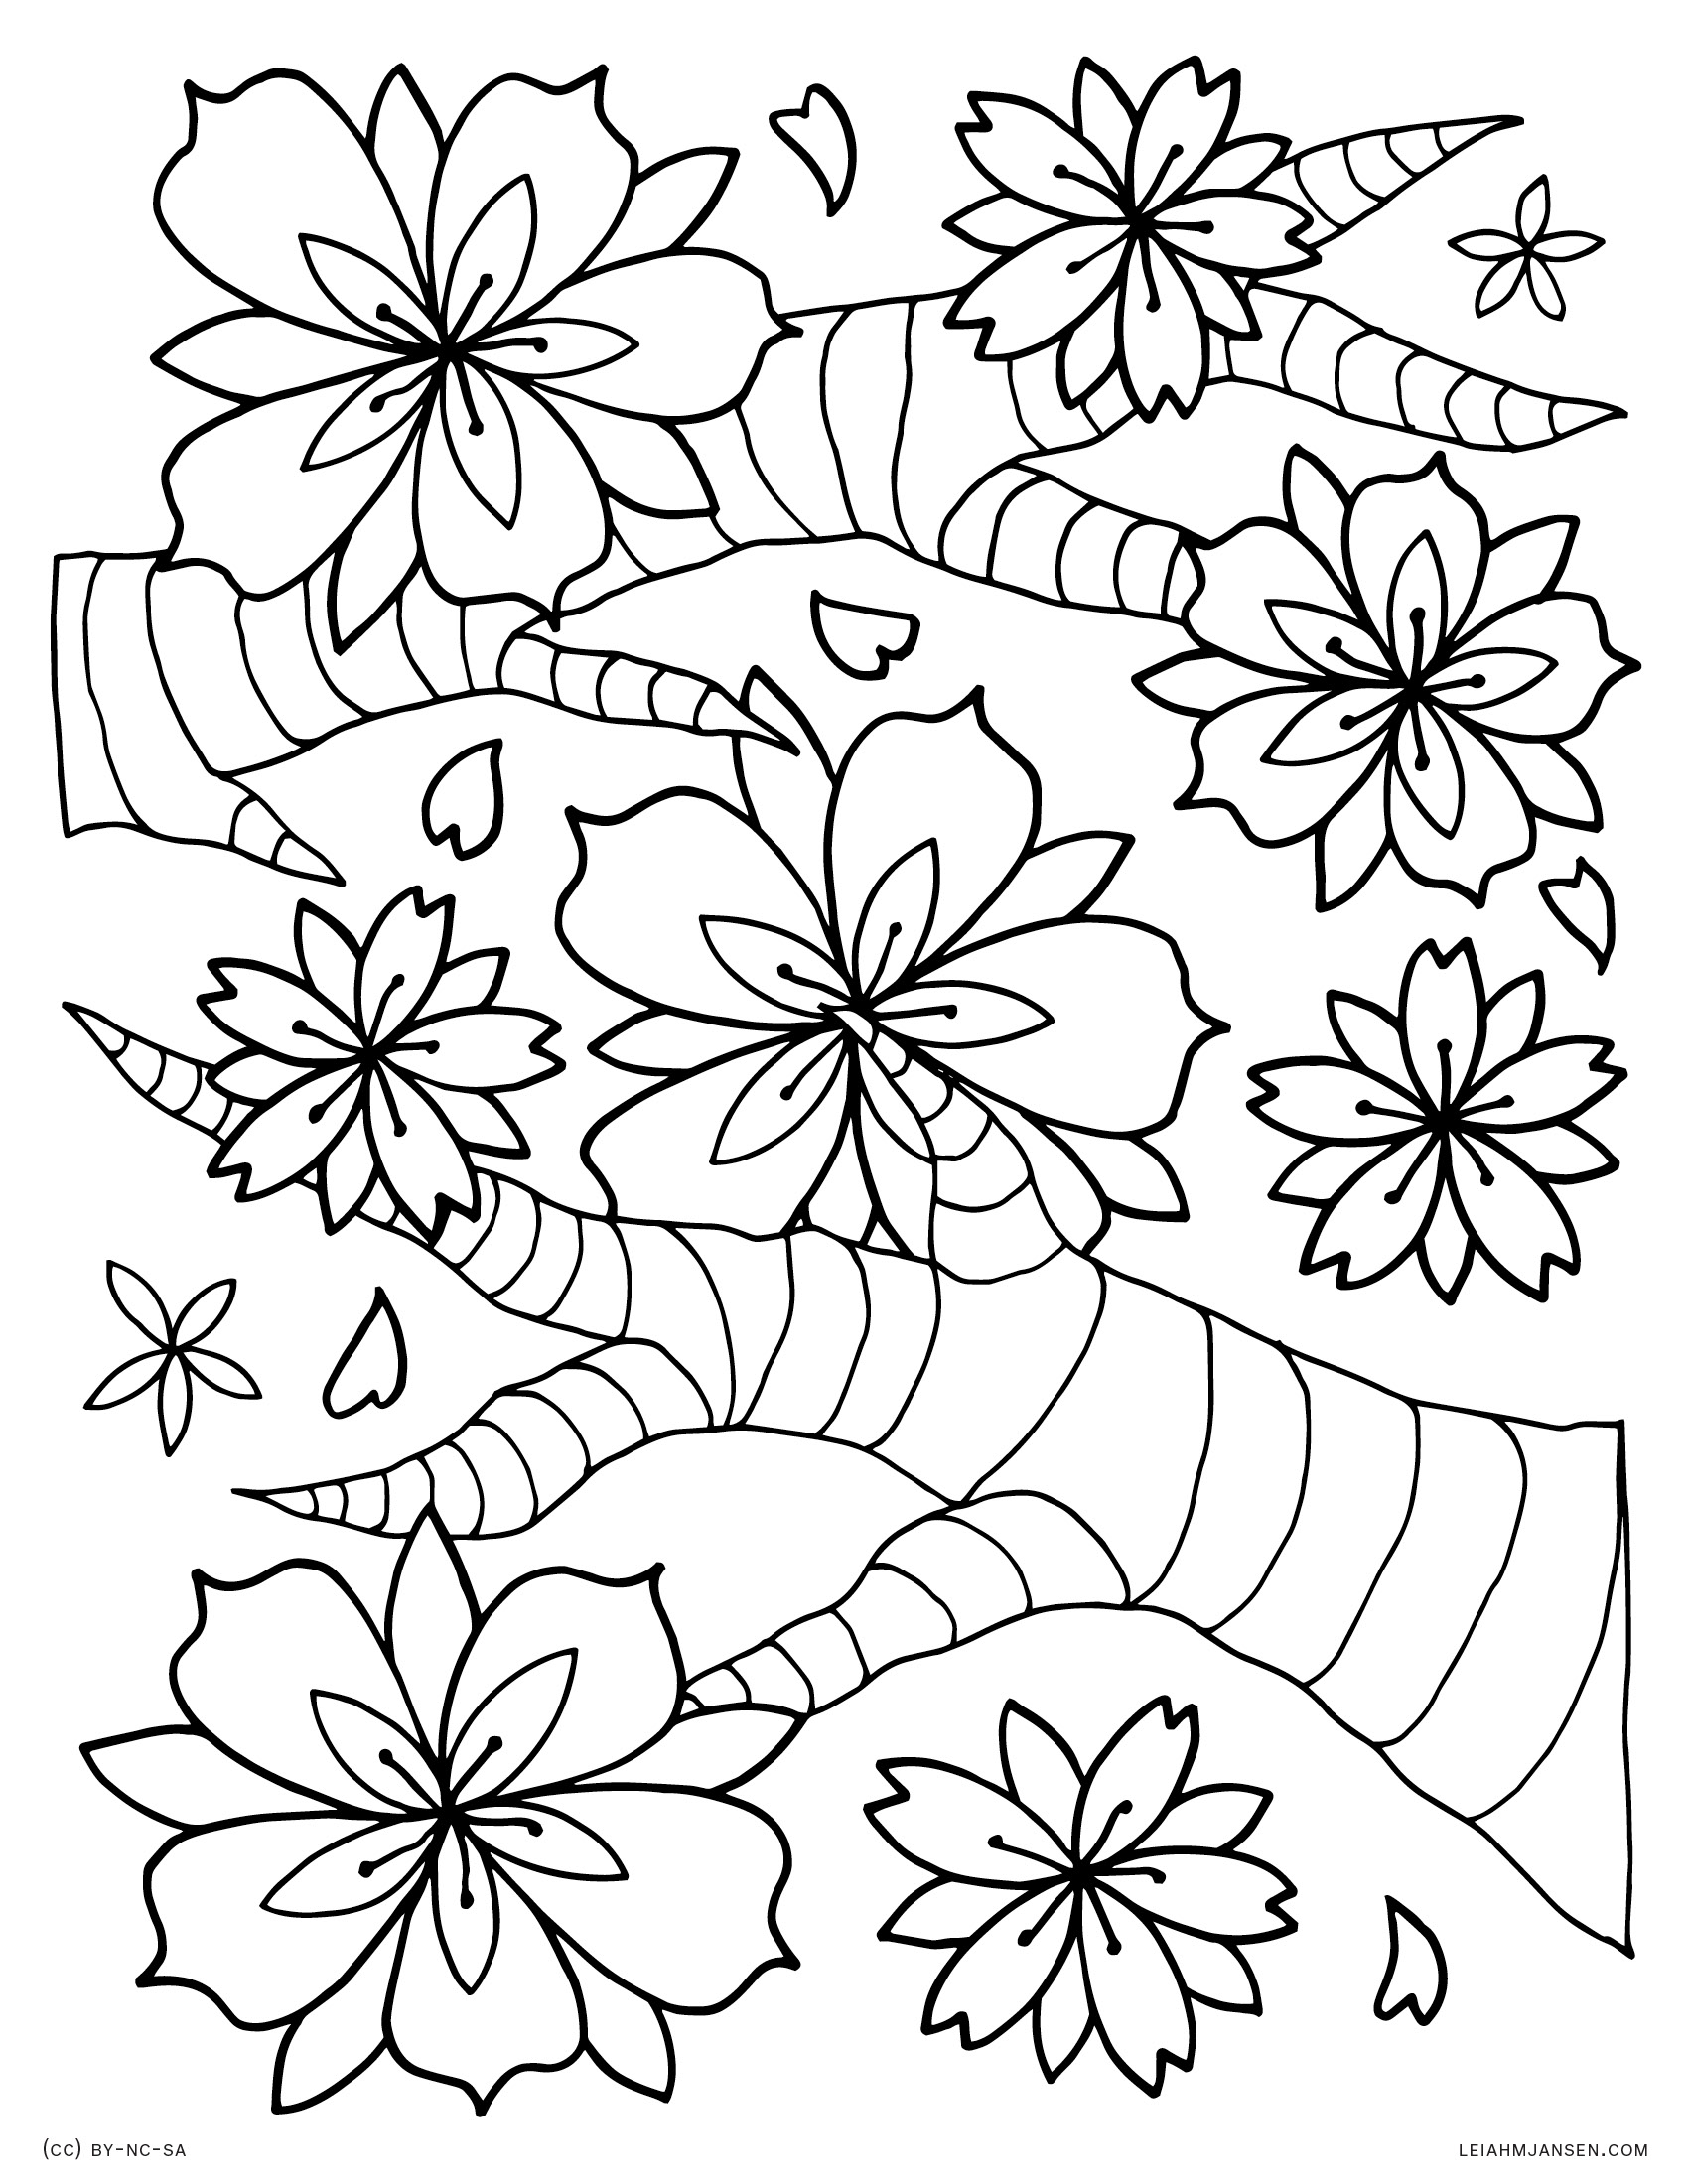 blossoms coloring pages - photo#8